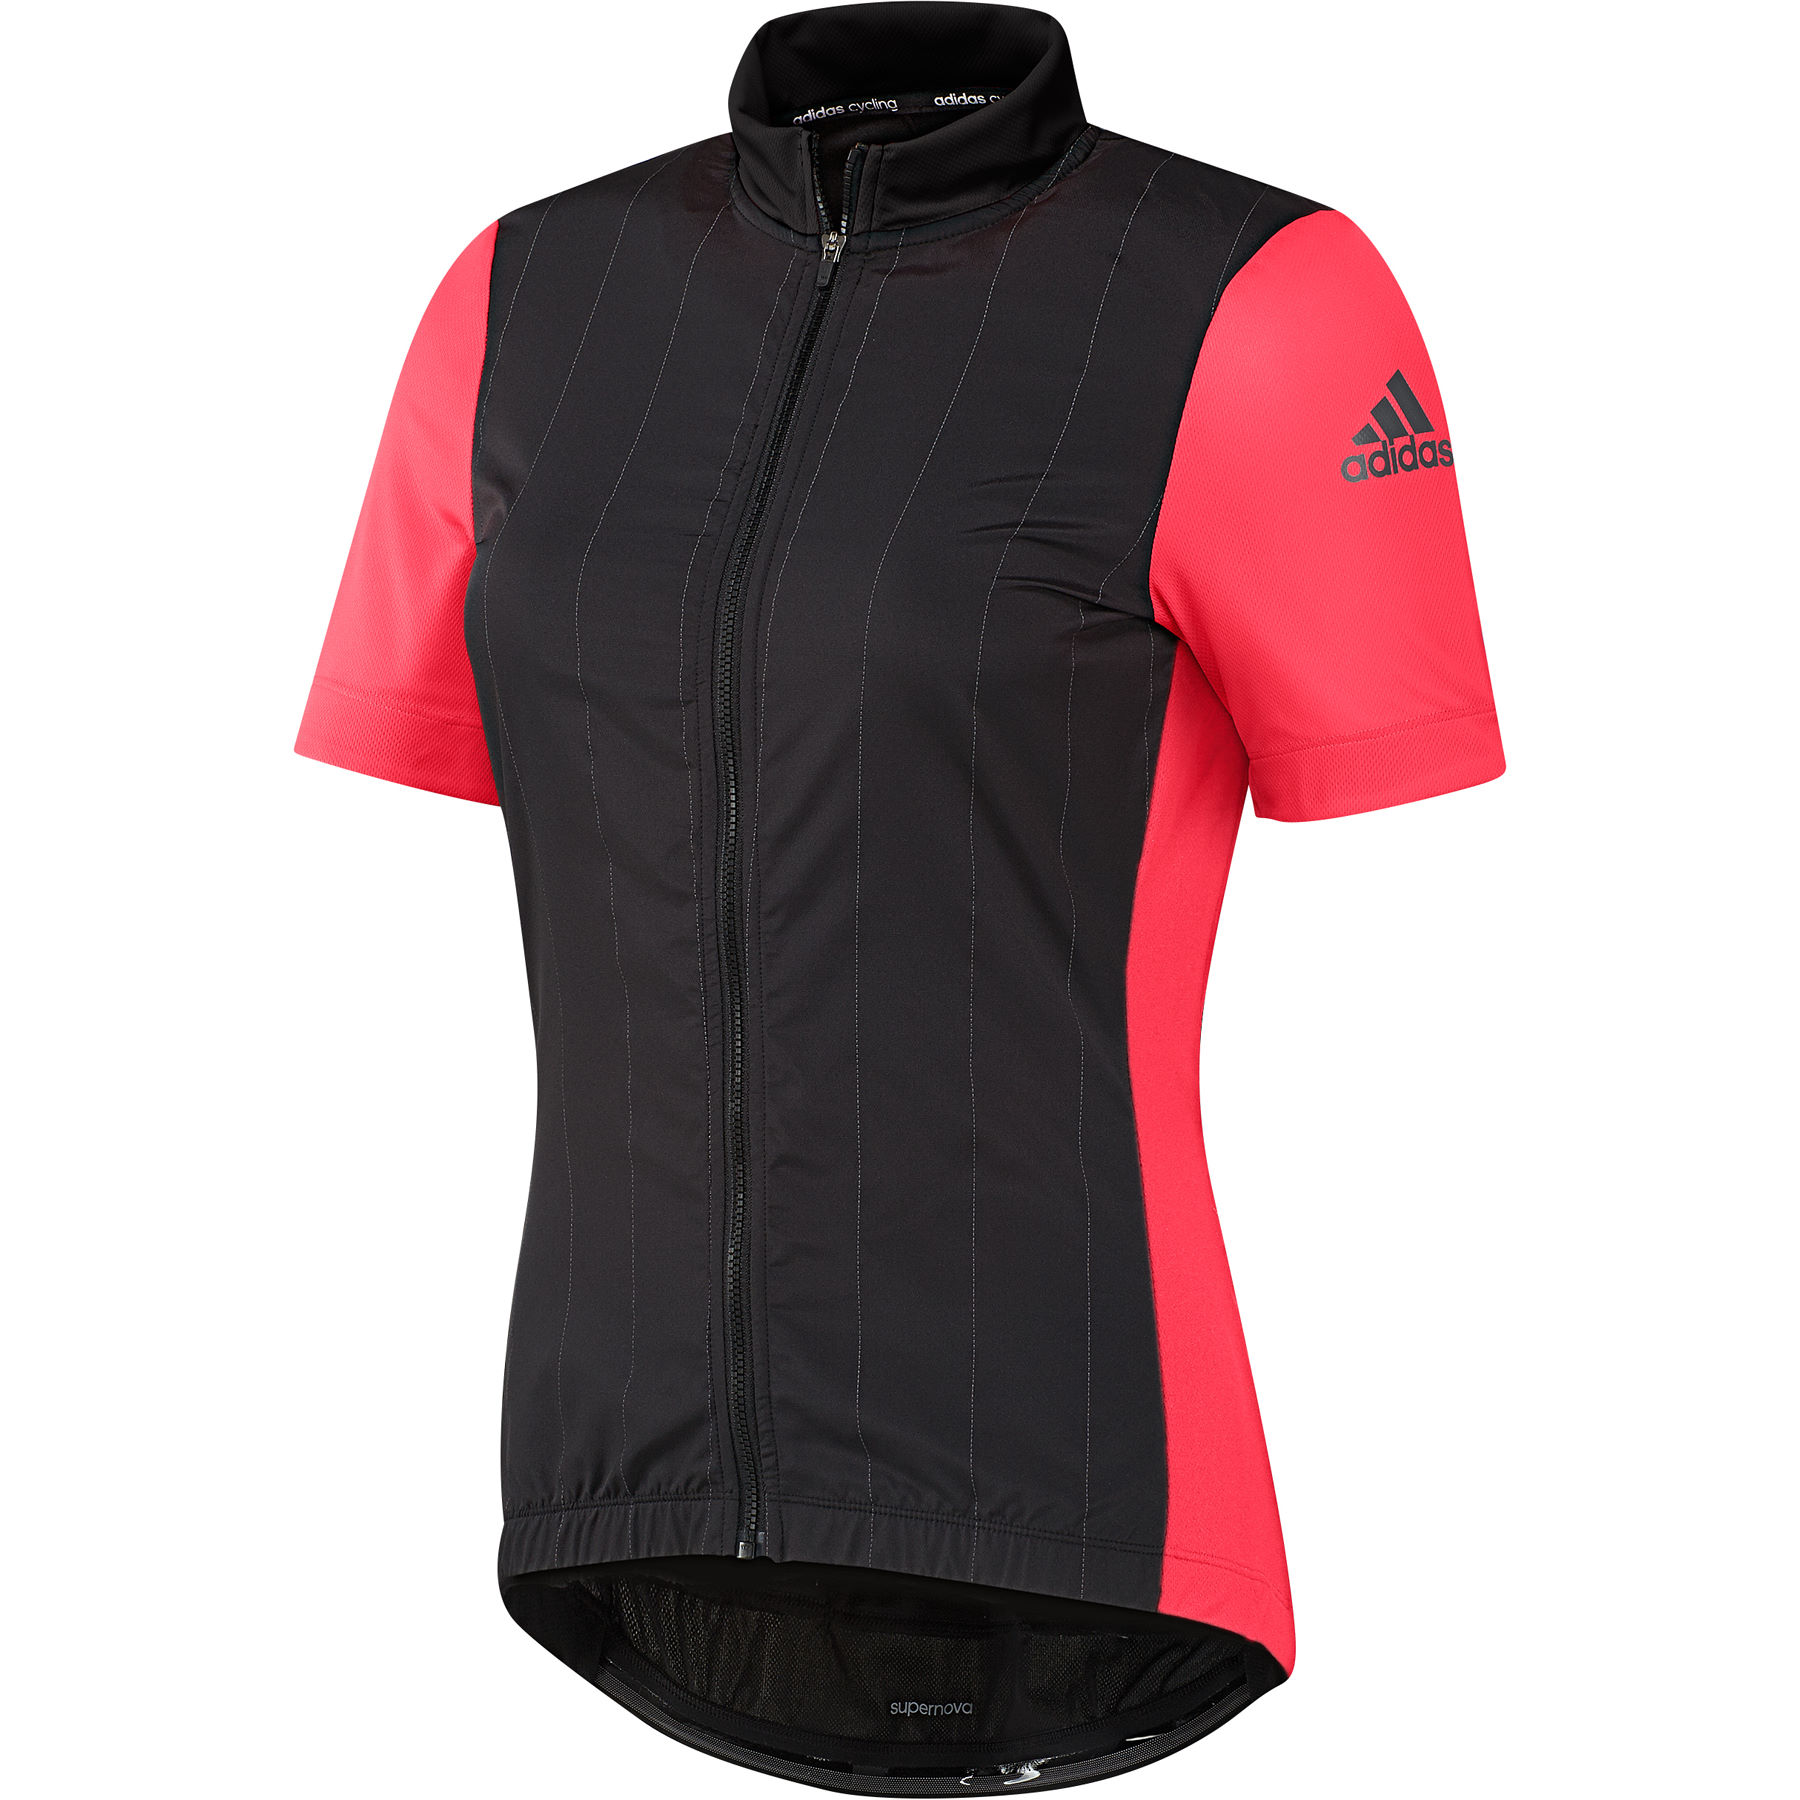 jersey women Womens cycling clothing and womens cycling gear available at primal - where we design womens cycling clothes made for the modern cyclist - for the trails or the roads.